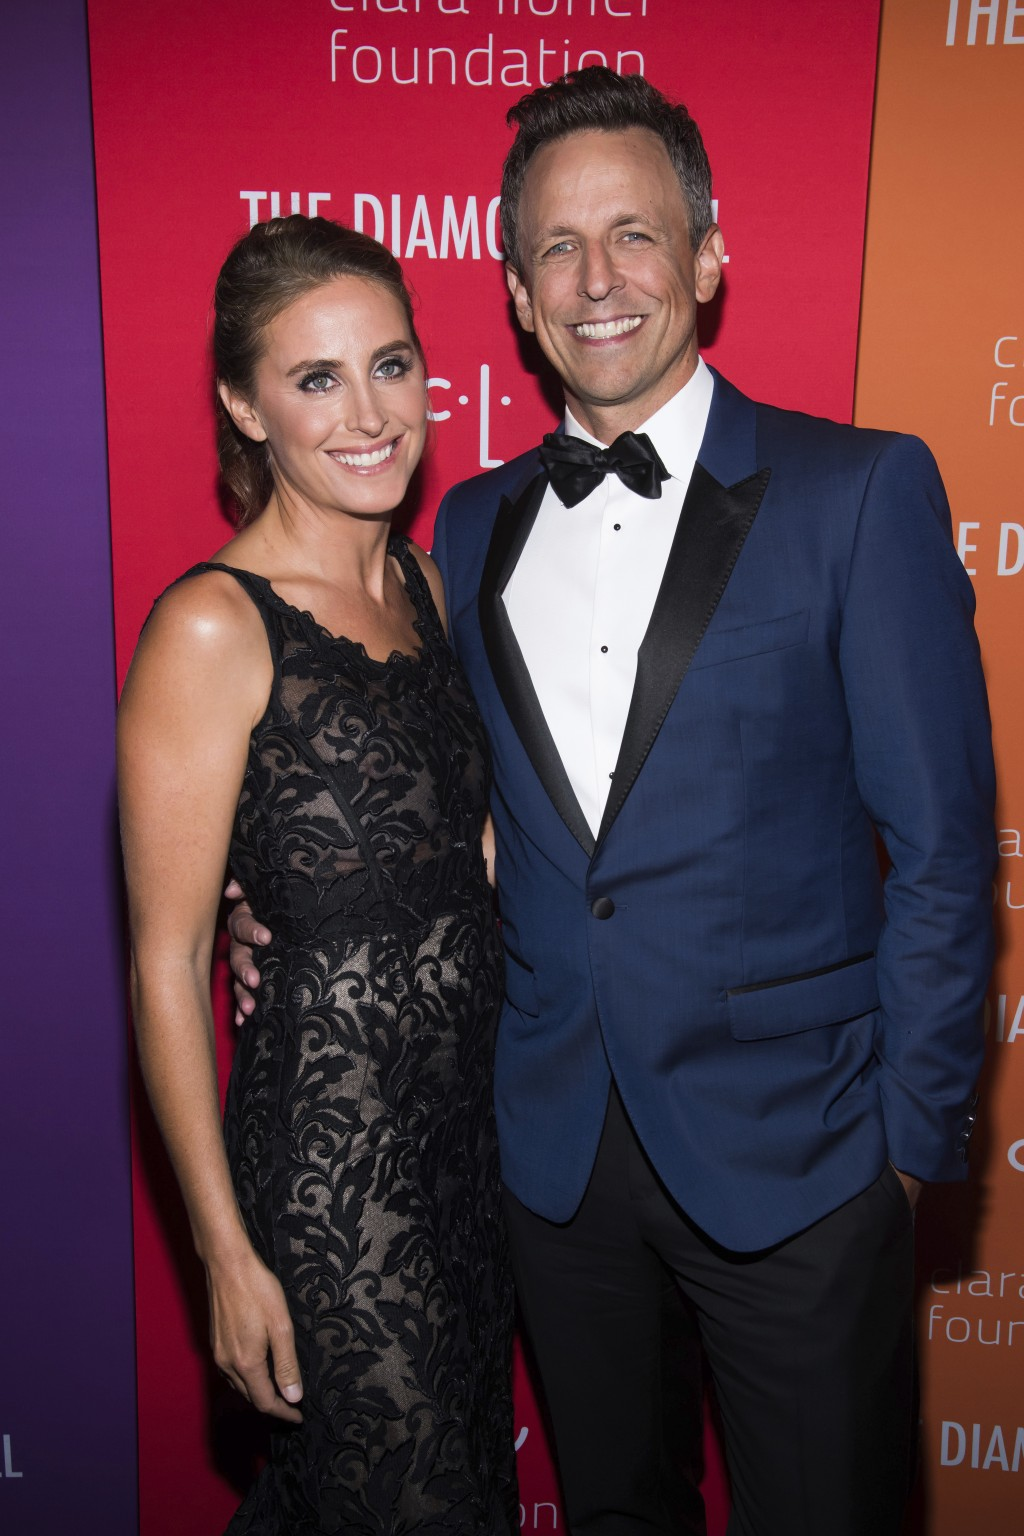 Alexi Ashe and Seth Meyers attend the 5th annual Diamond Ball benefit gala at Cipriani Wall Street on Thursday, Sept. 12, 2019, in New York. (Photo by